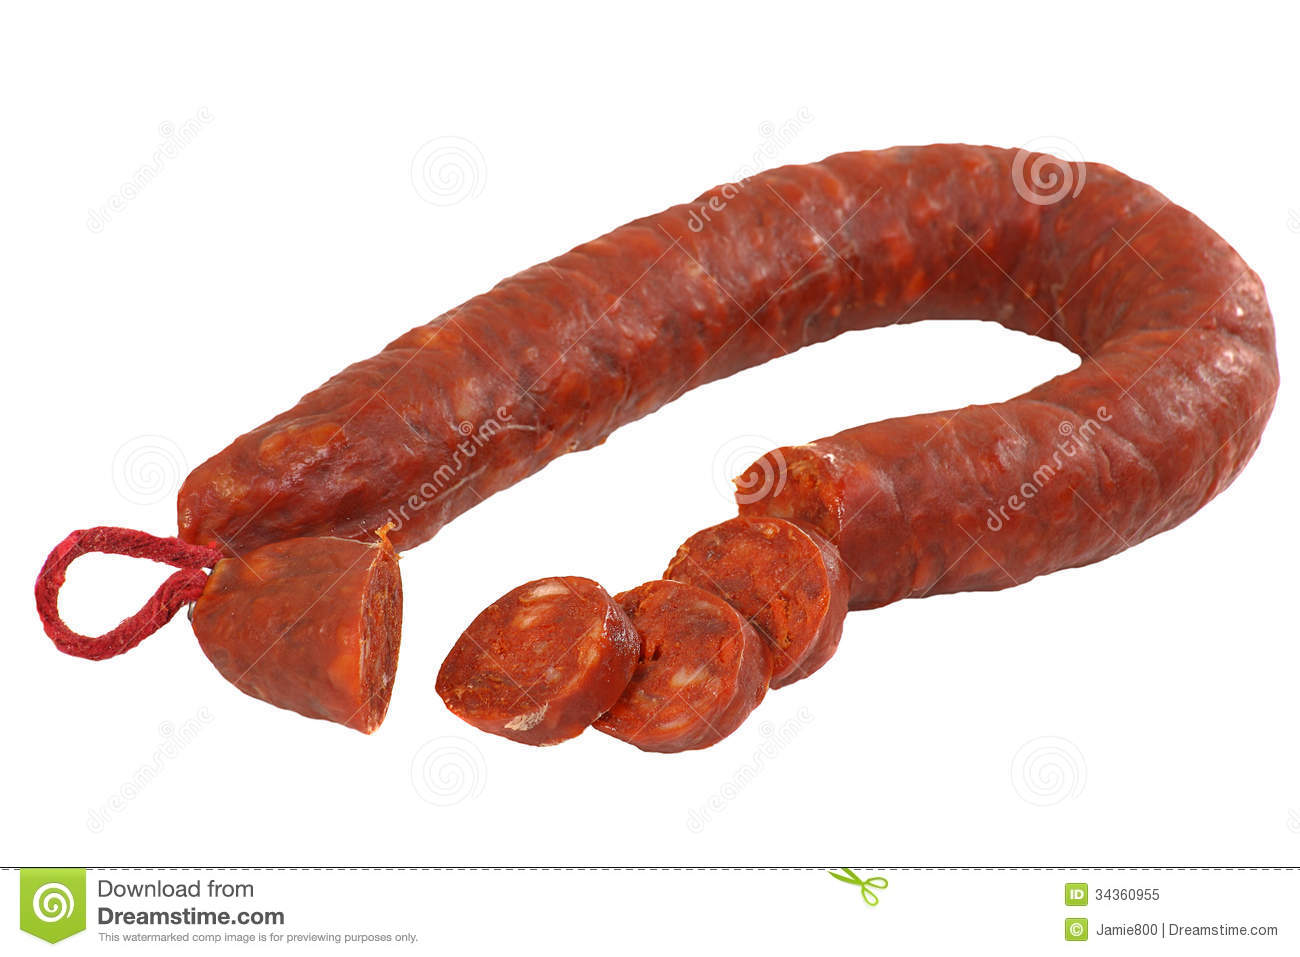 2654795 Columbus Diced Pancetta 5 Oz additionally 1967063 furthermore Kids Lunch Box Ideas together with Royalty Free Stock Photo Sliced Chorizo Ring Isolated White Background Image34360955 in addition Winter Walking Tour Montreal. on deli lunch meat